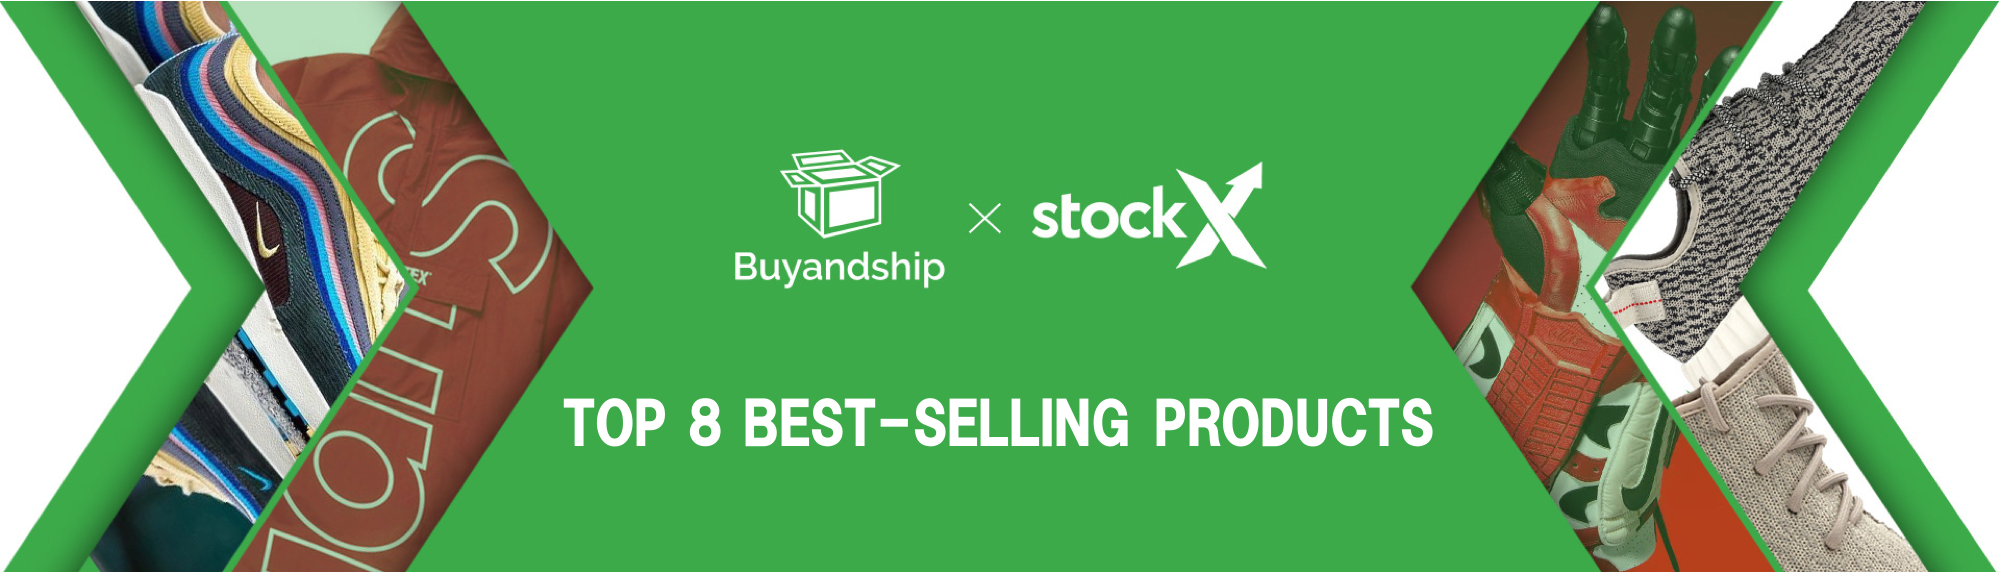 Top 8 Best-Selling Products on StockX